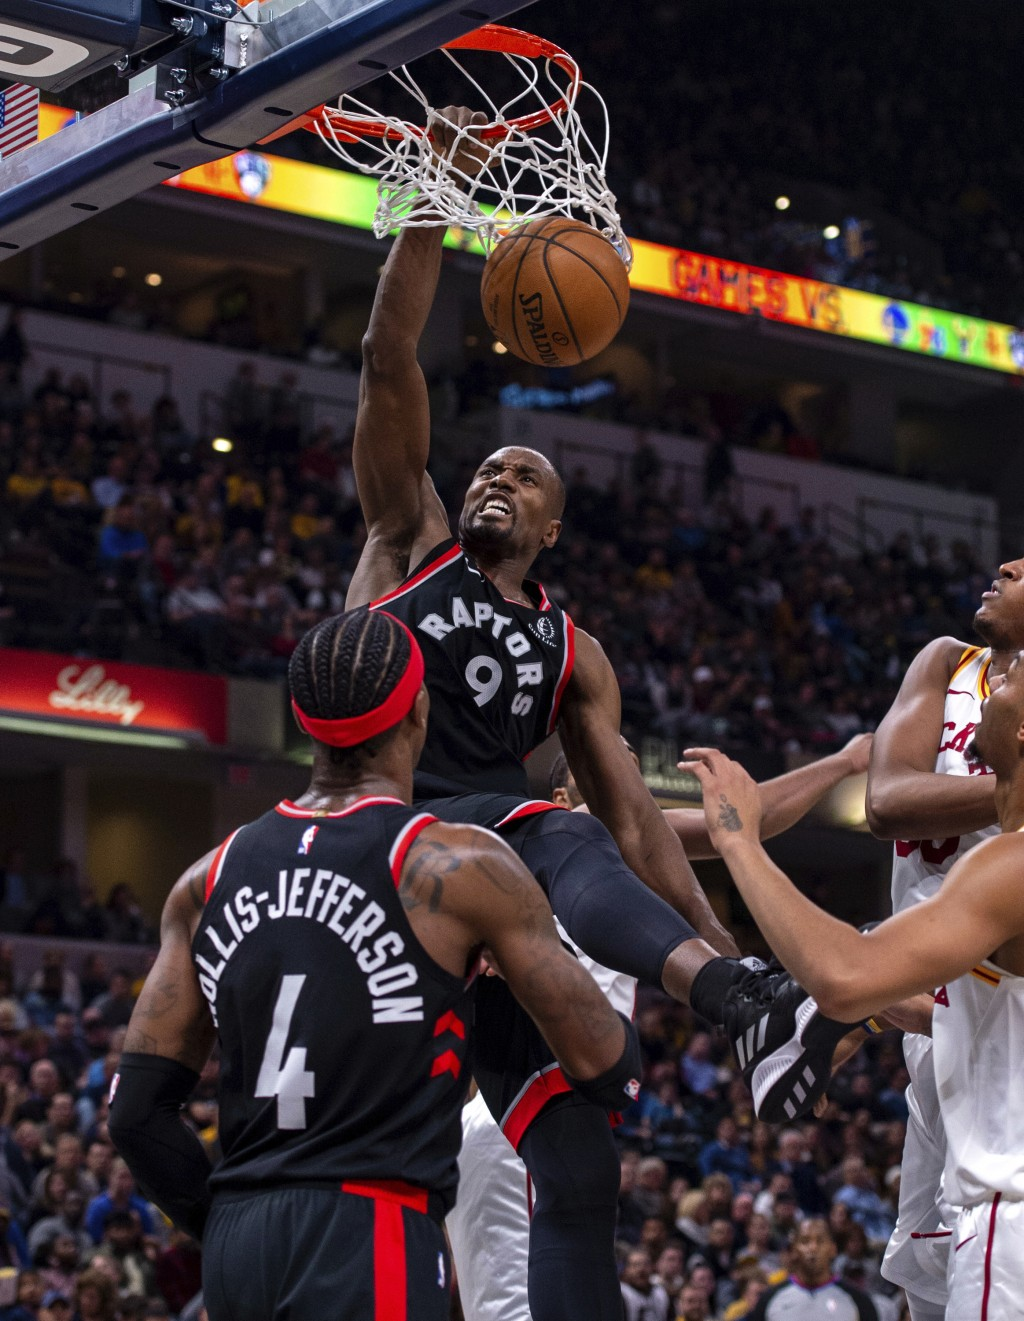 Toronto Raptors forward Serge Ibaka (9) scores with a slam dunk during an NBA basketball game against the Indiana Pacers, Monday, Dec. 23, 2019, in In...